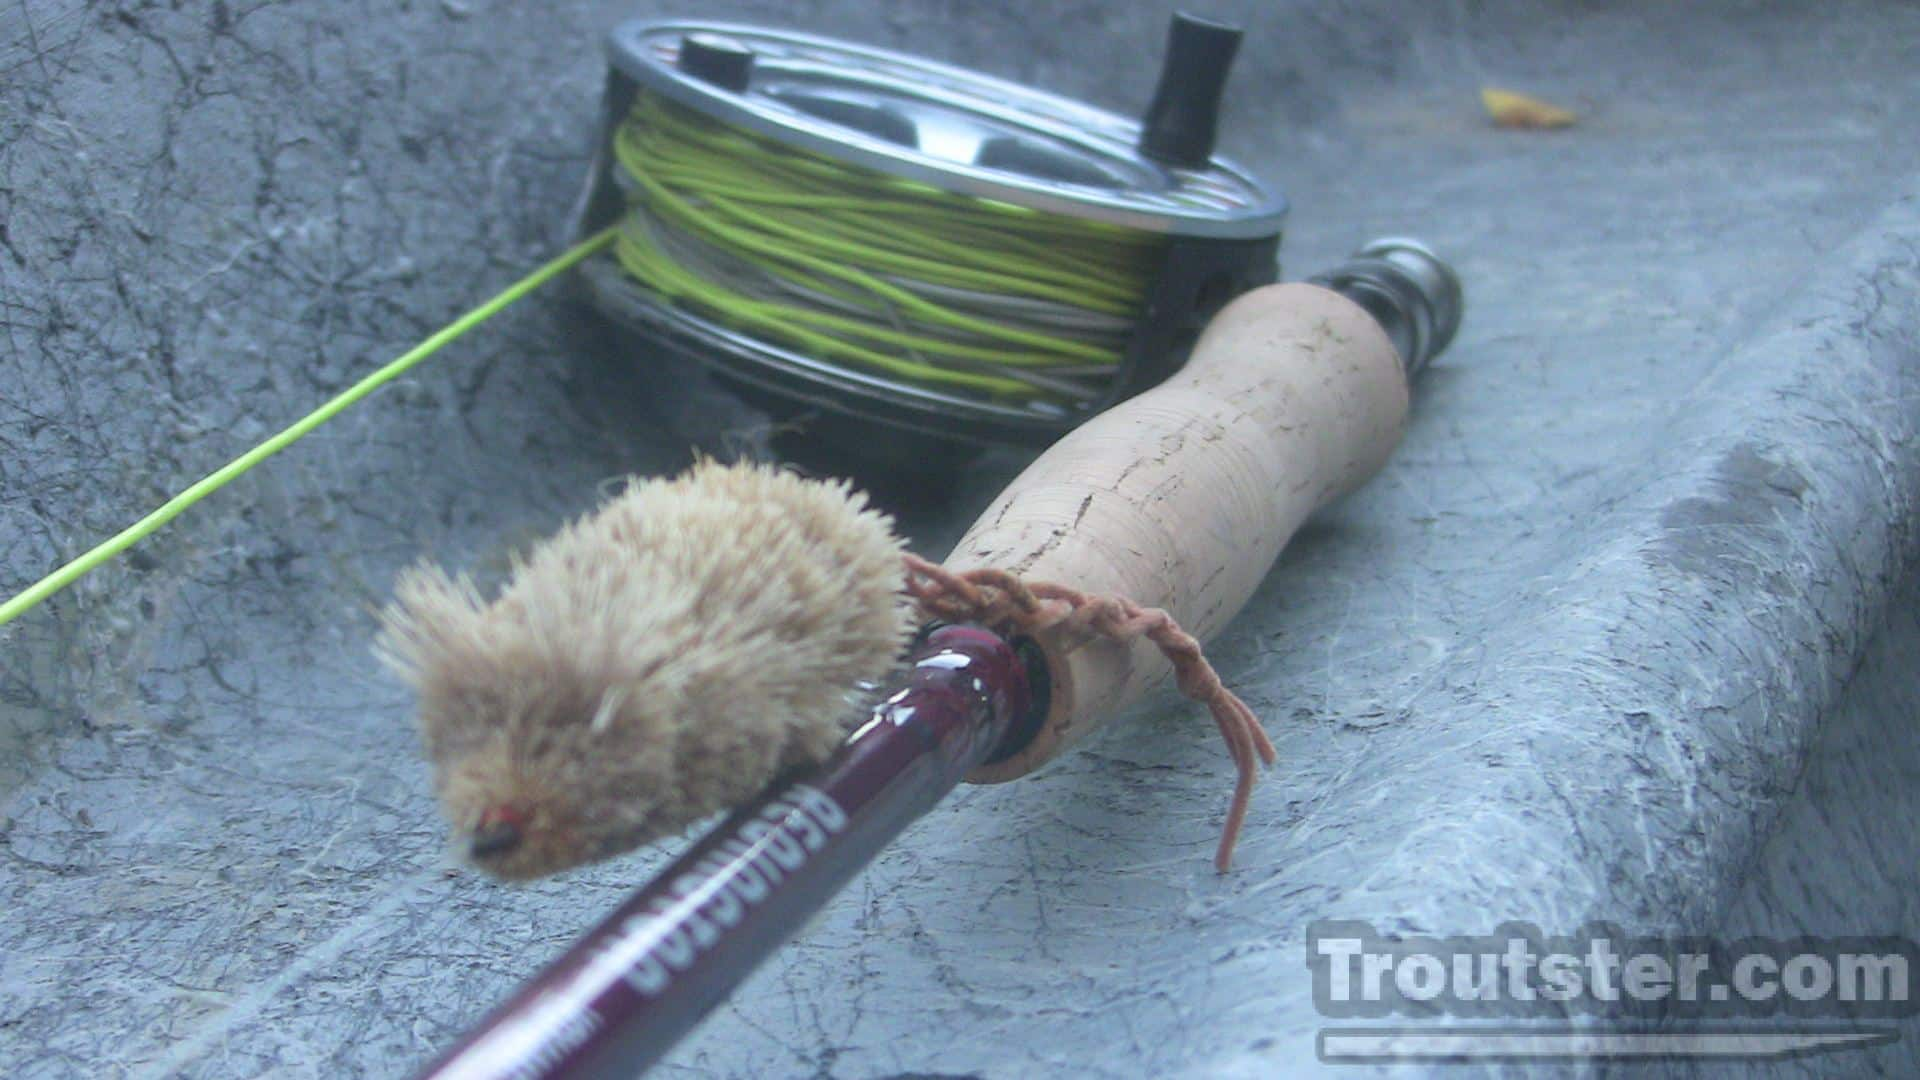 A Redinton fly rod rigged with a deer hair mouse pattern